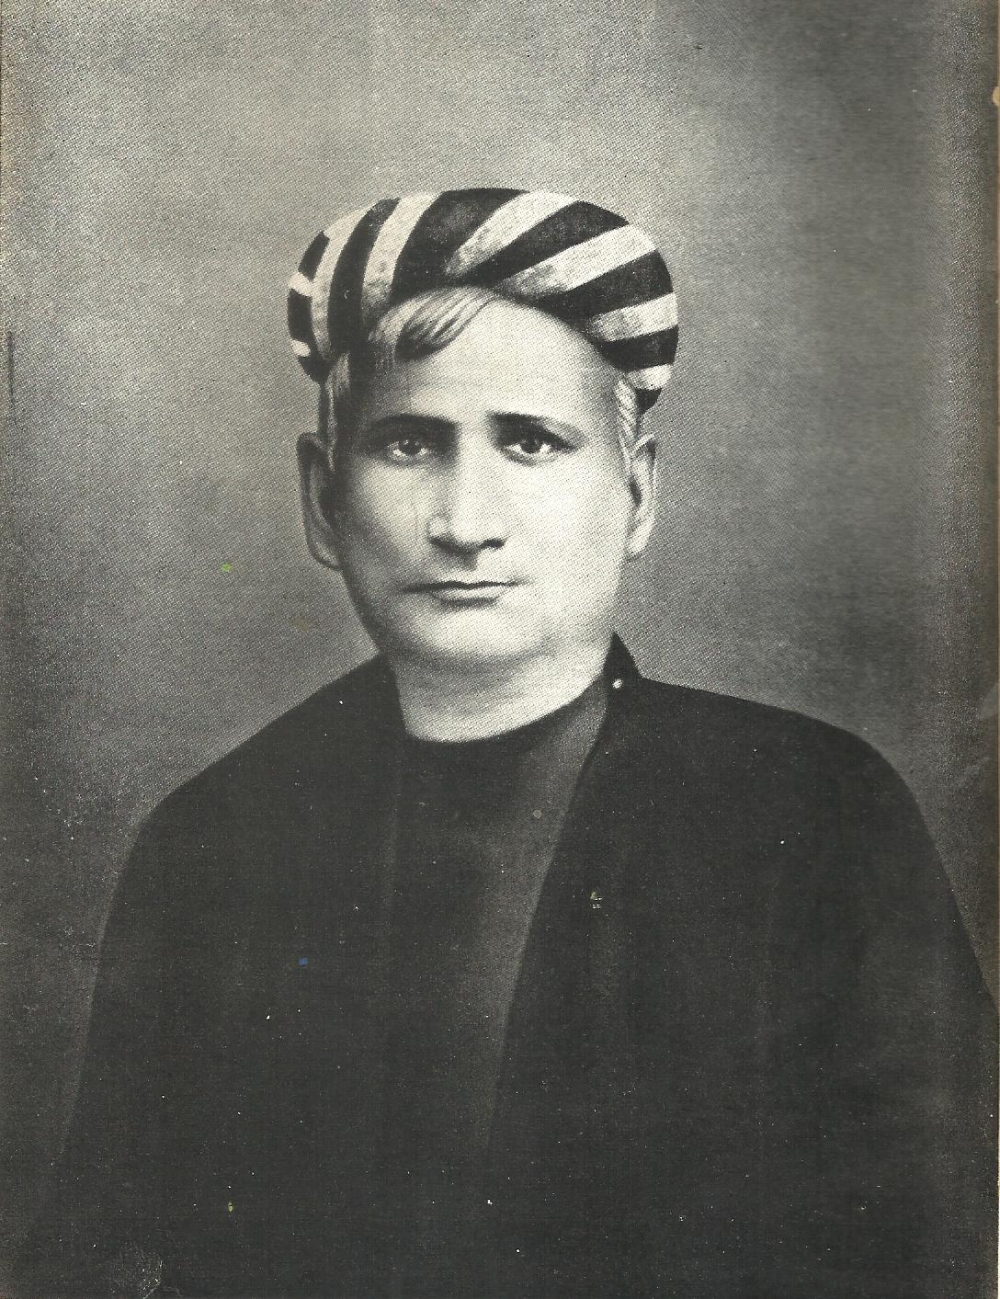 Bankim Chandra Chattopadhyay, Bankim Chandra Chatterjee, Anandamath, Bengali Literature, Vande Matram, Hindu Nationalism, Bongodarshan, Indian Literature